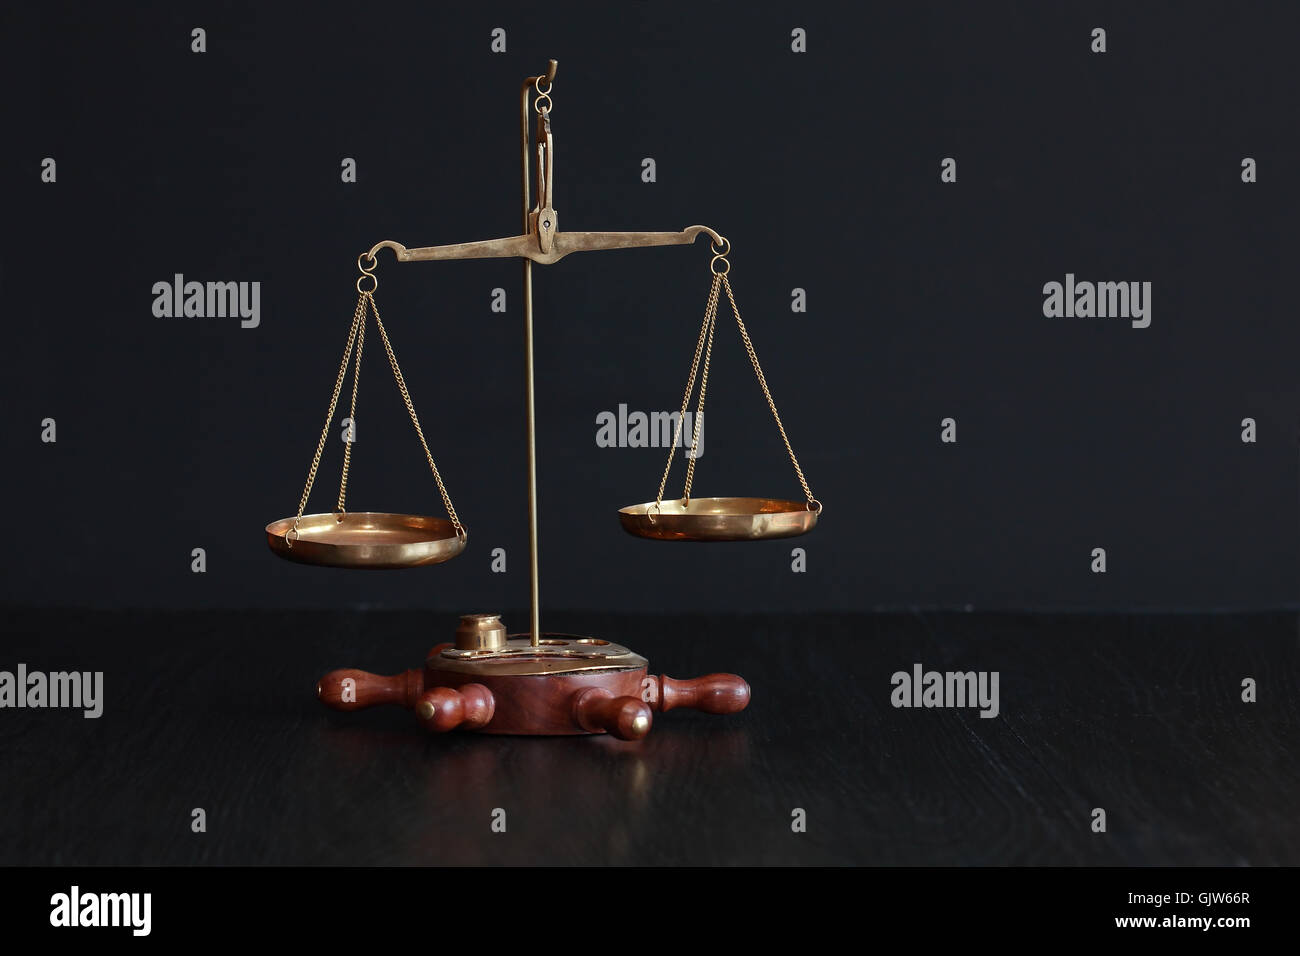 Old brass weight scale on black background with free space - Stock Image